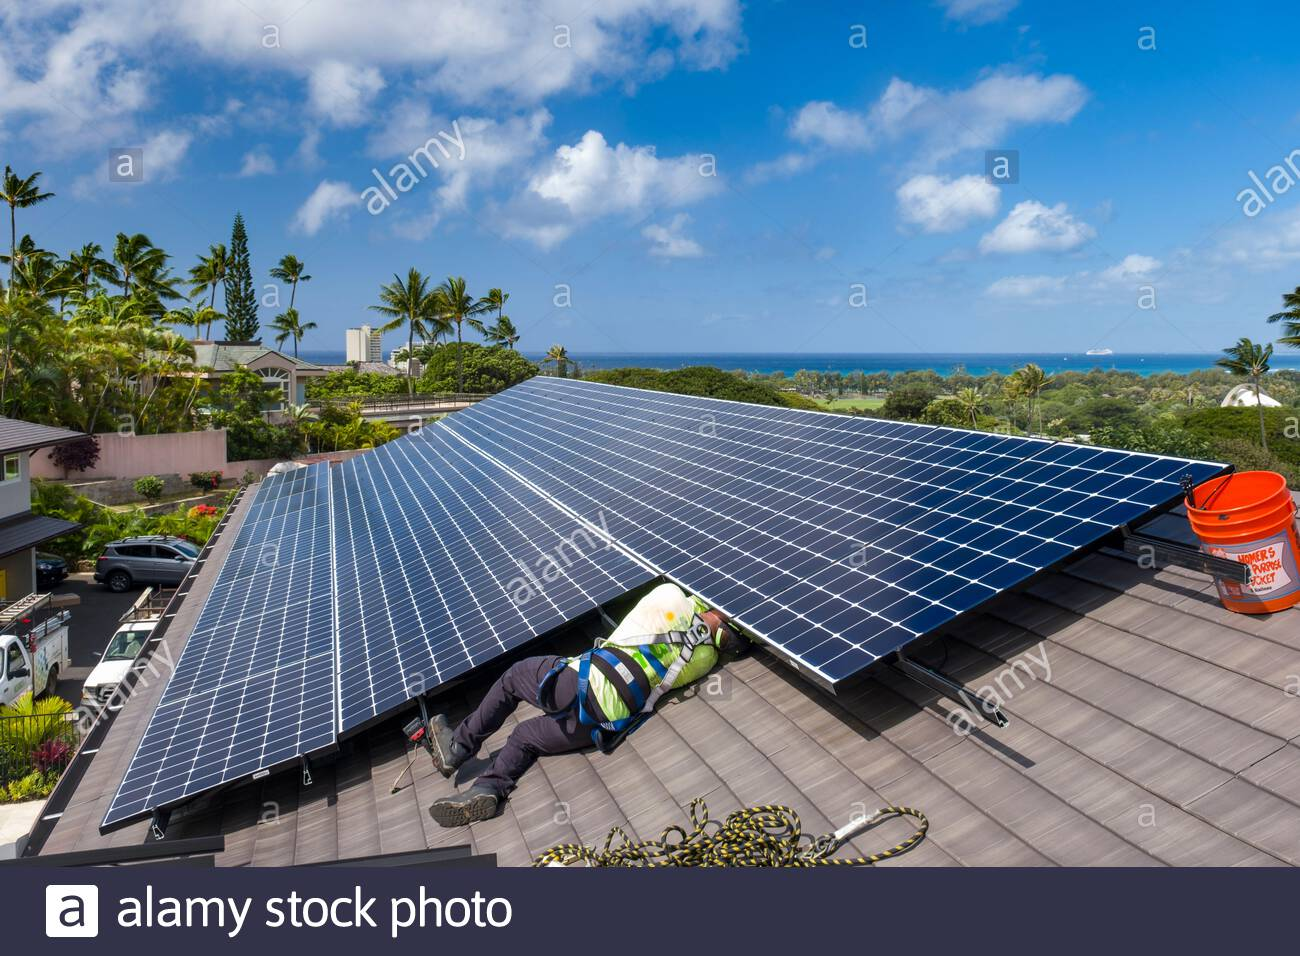 Man laying on rooftop reaching under photovoltaic panel to connected the wiring during a residential installation, Honolulu, Oahu, Hawaii, USA Stock Photo